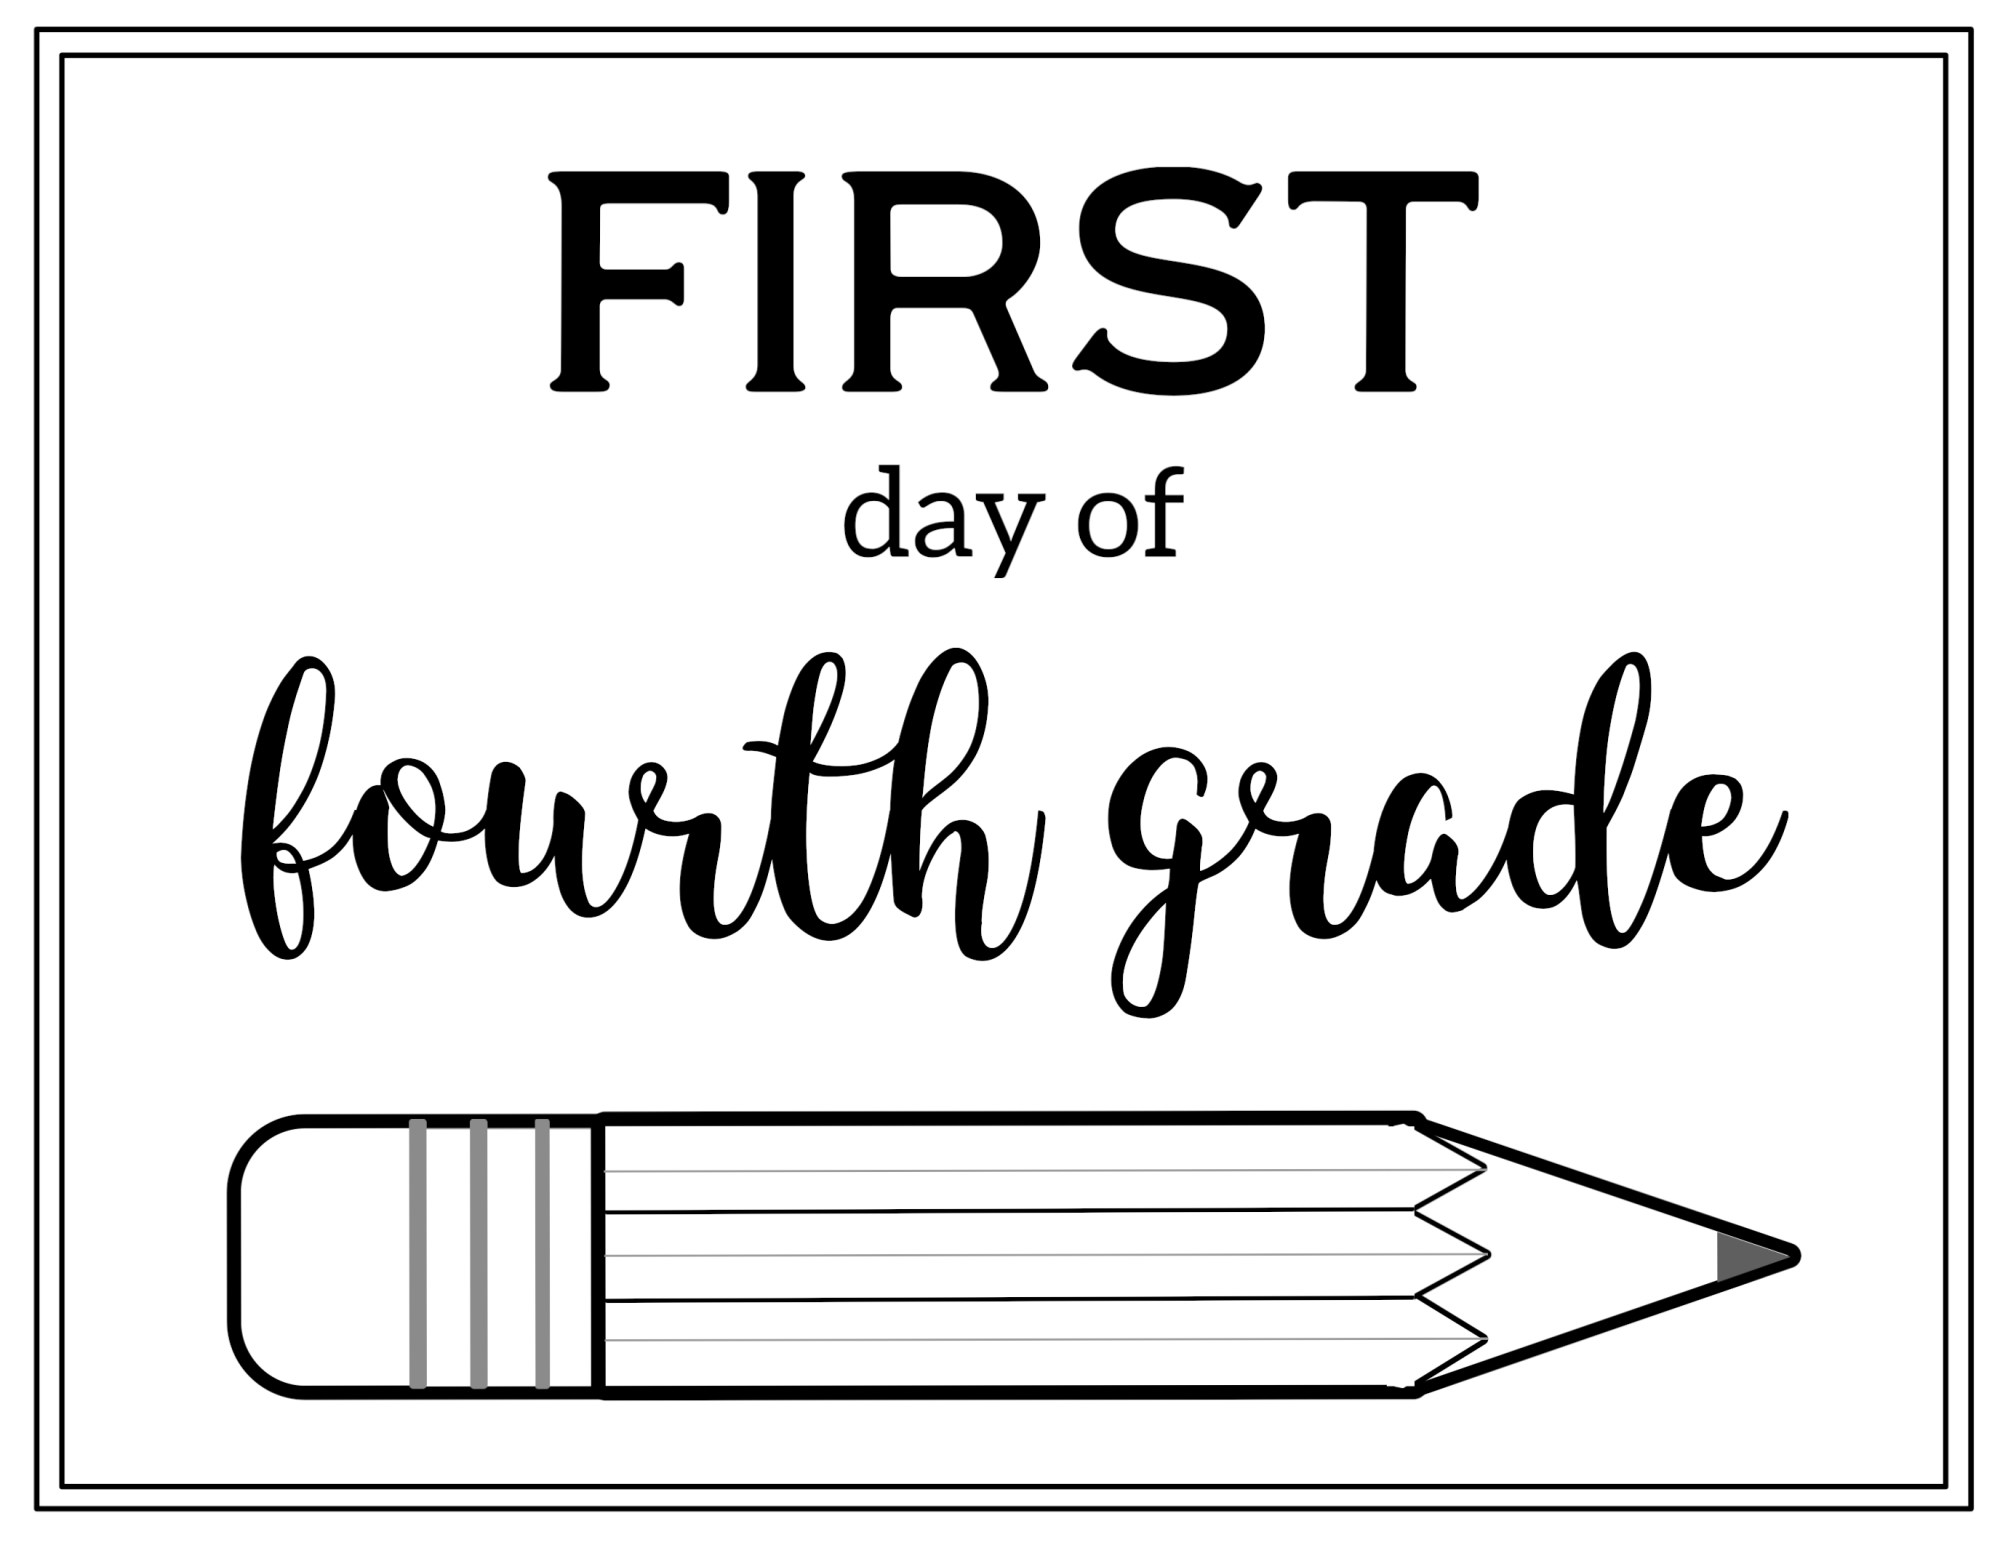 hight resolution of Free Printable First Day of School Sign {Pencil}   Paper Trail Design